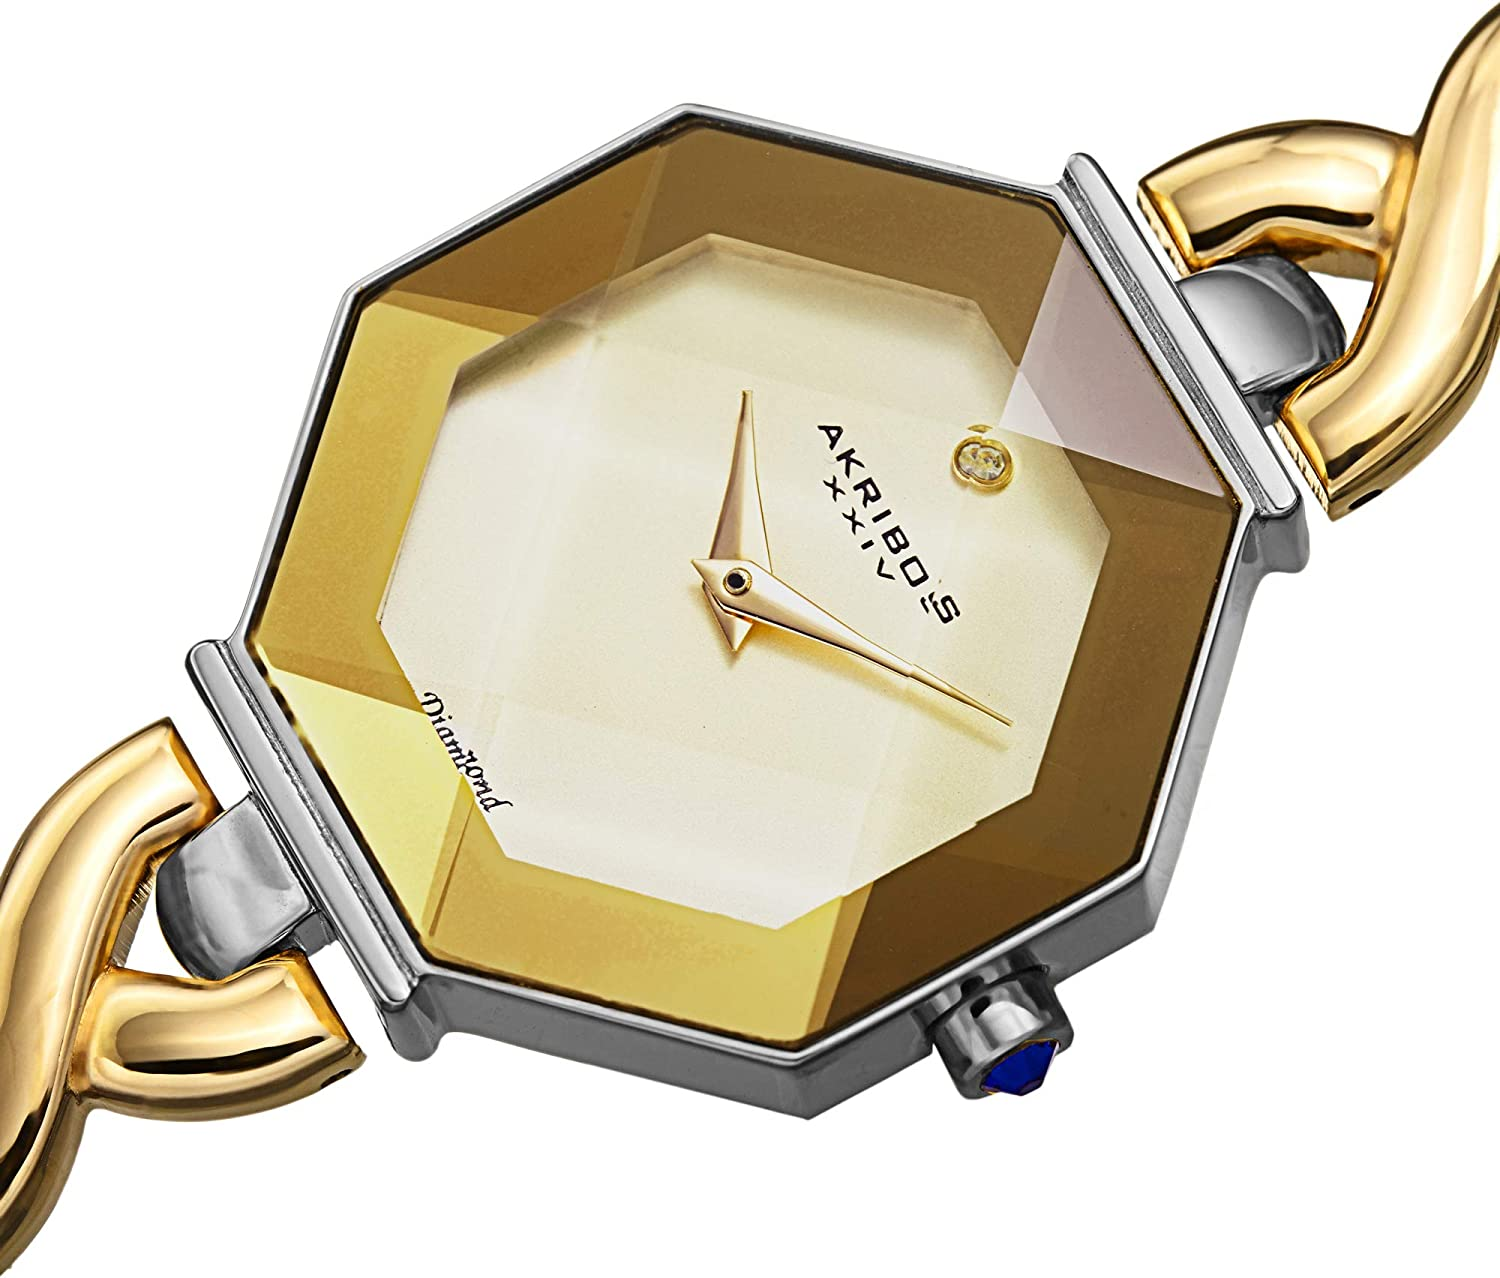 Akribos Octagonal Case Faceted Crystal Lens - Women's Watch - with Diamond Marker Adorned with Twisted Link Bracelet - AK1086 Two-Tone Gold